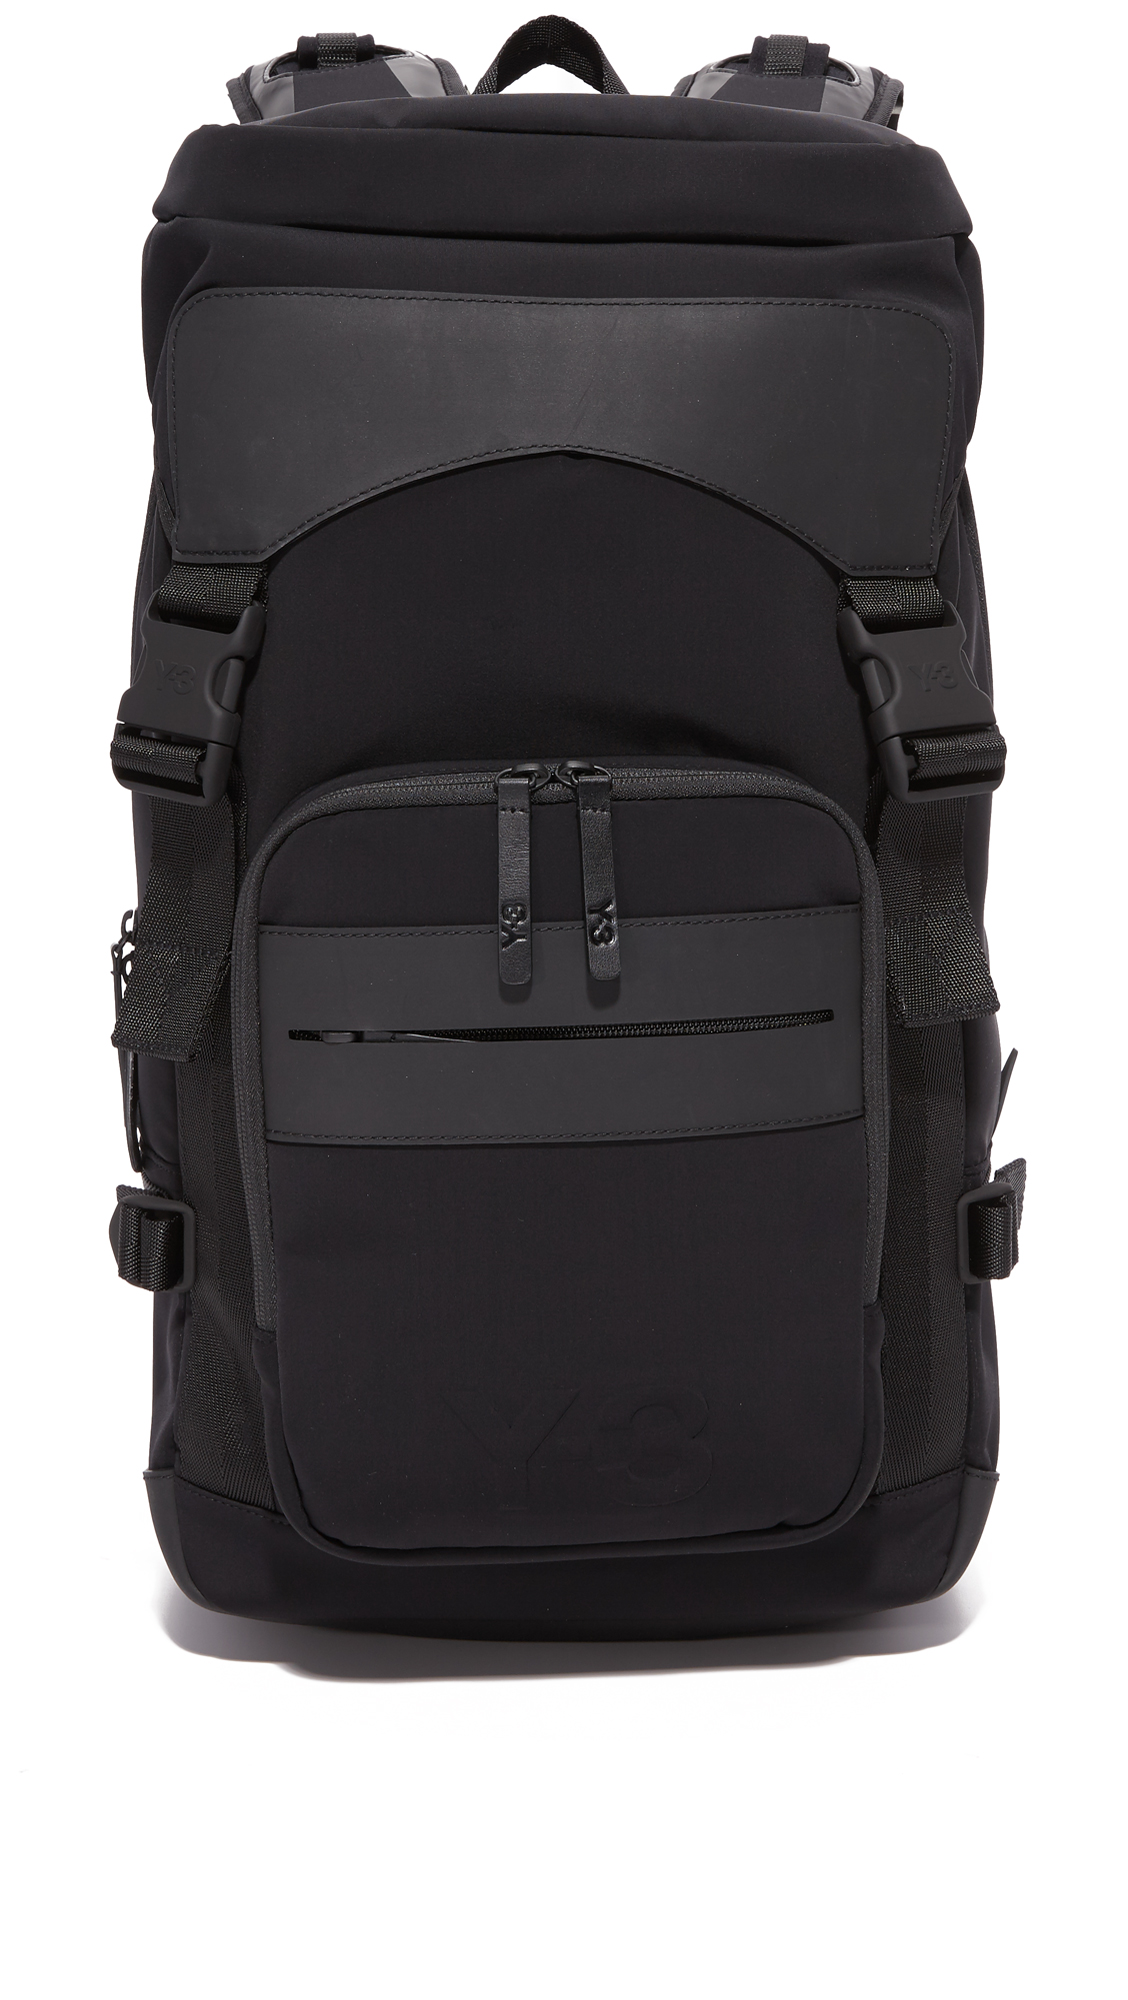 088917a0052f Y-3 Ultratech Backpack